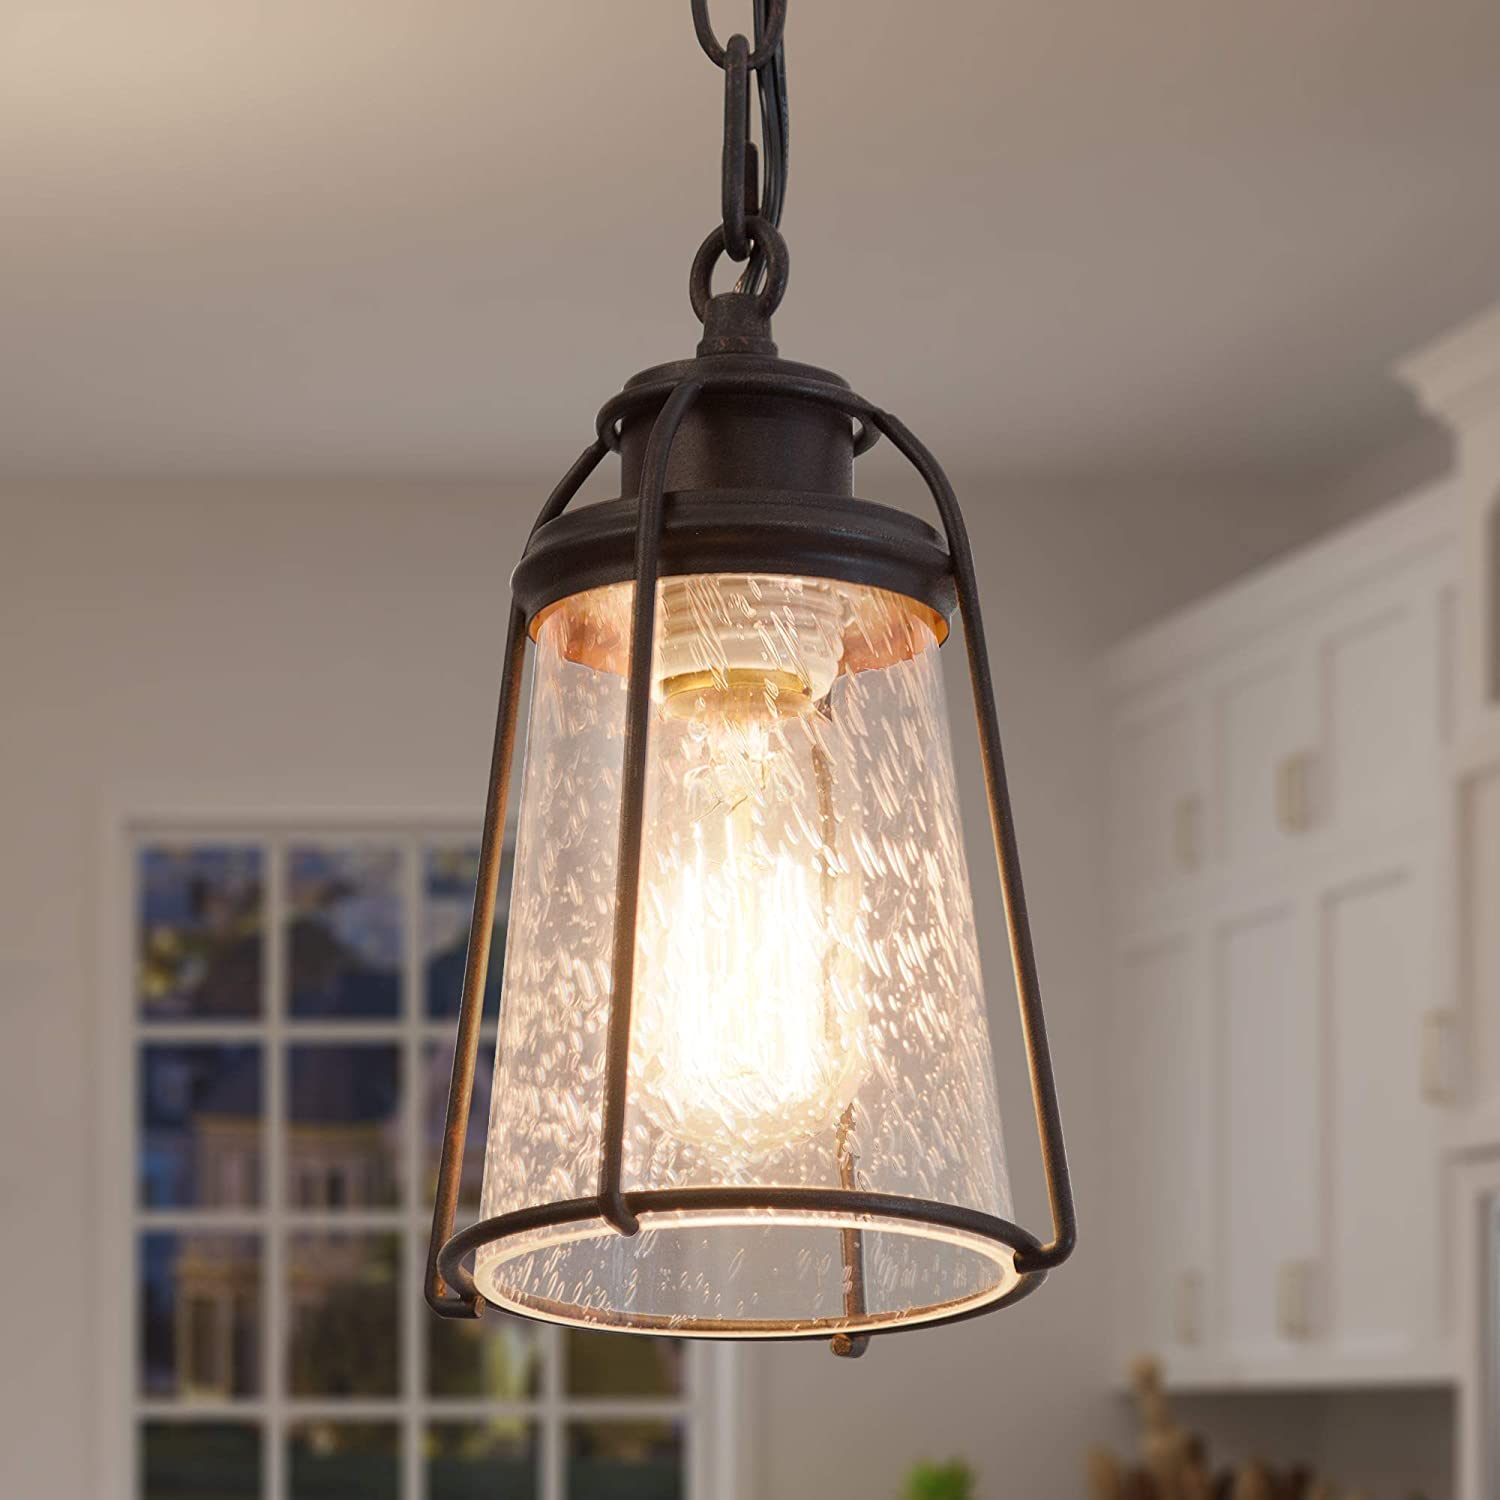 KSANA Farmhouse Pendant Lighting, Mini Rustic Hanging Light Fixture with Seeded Glass Shade for Kitchen Island, Foyer, Hallway, Bedroom and Entryway, Bronze